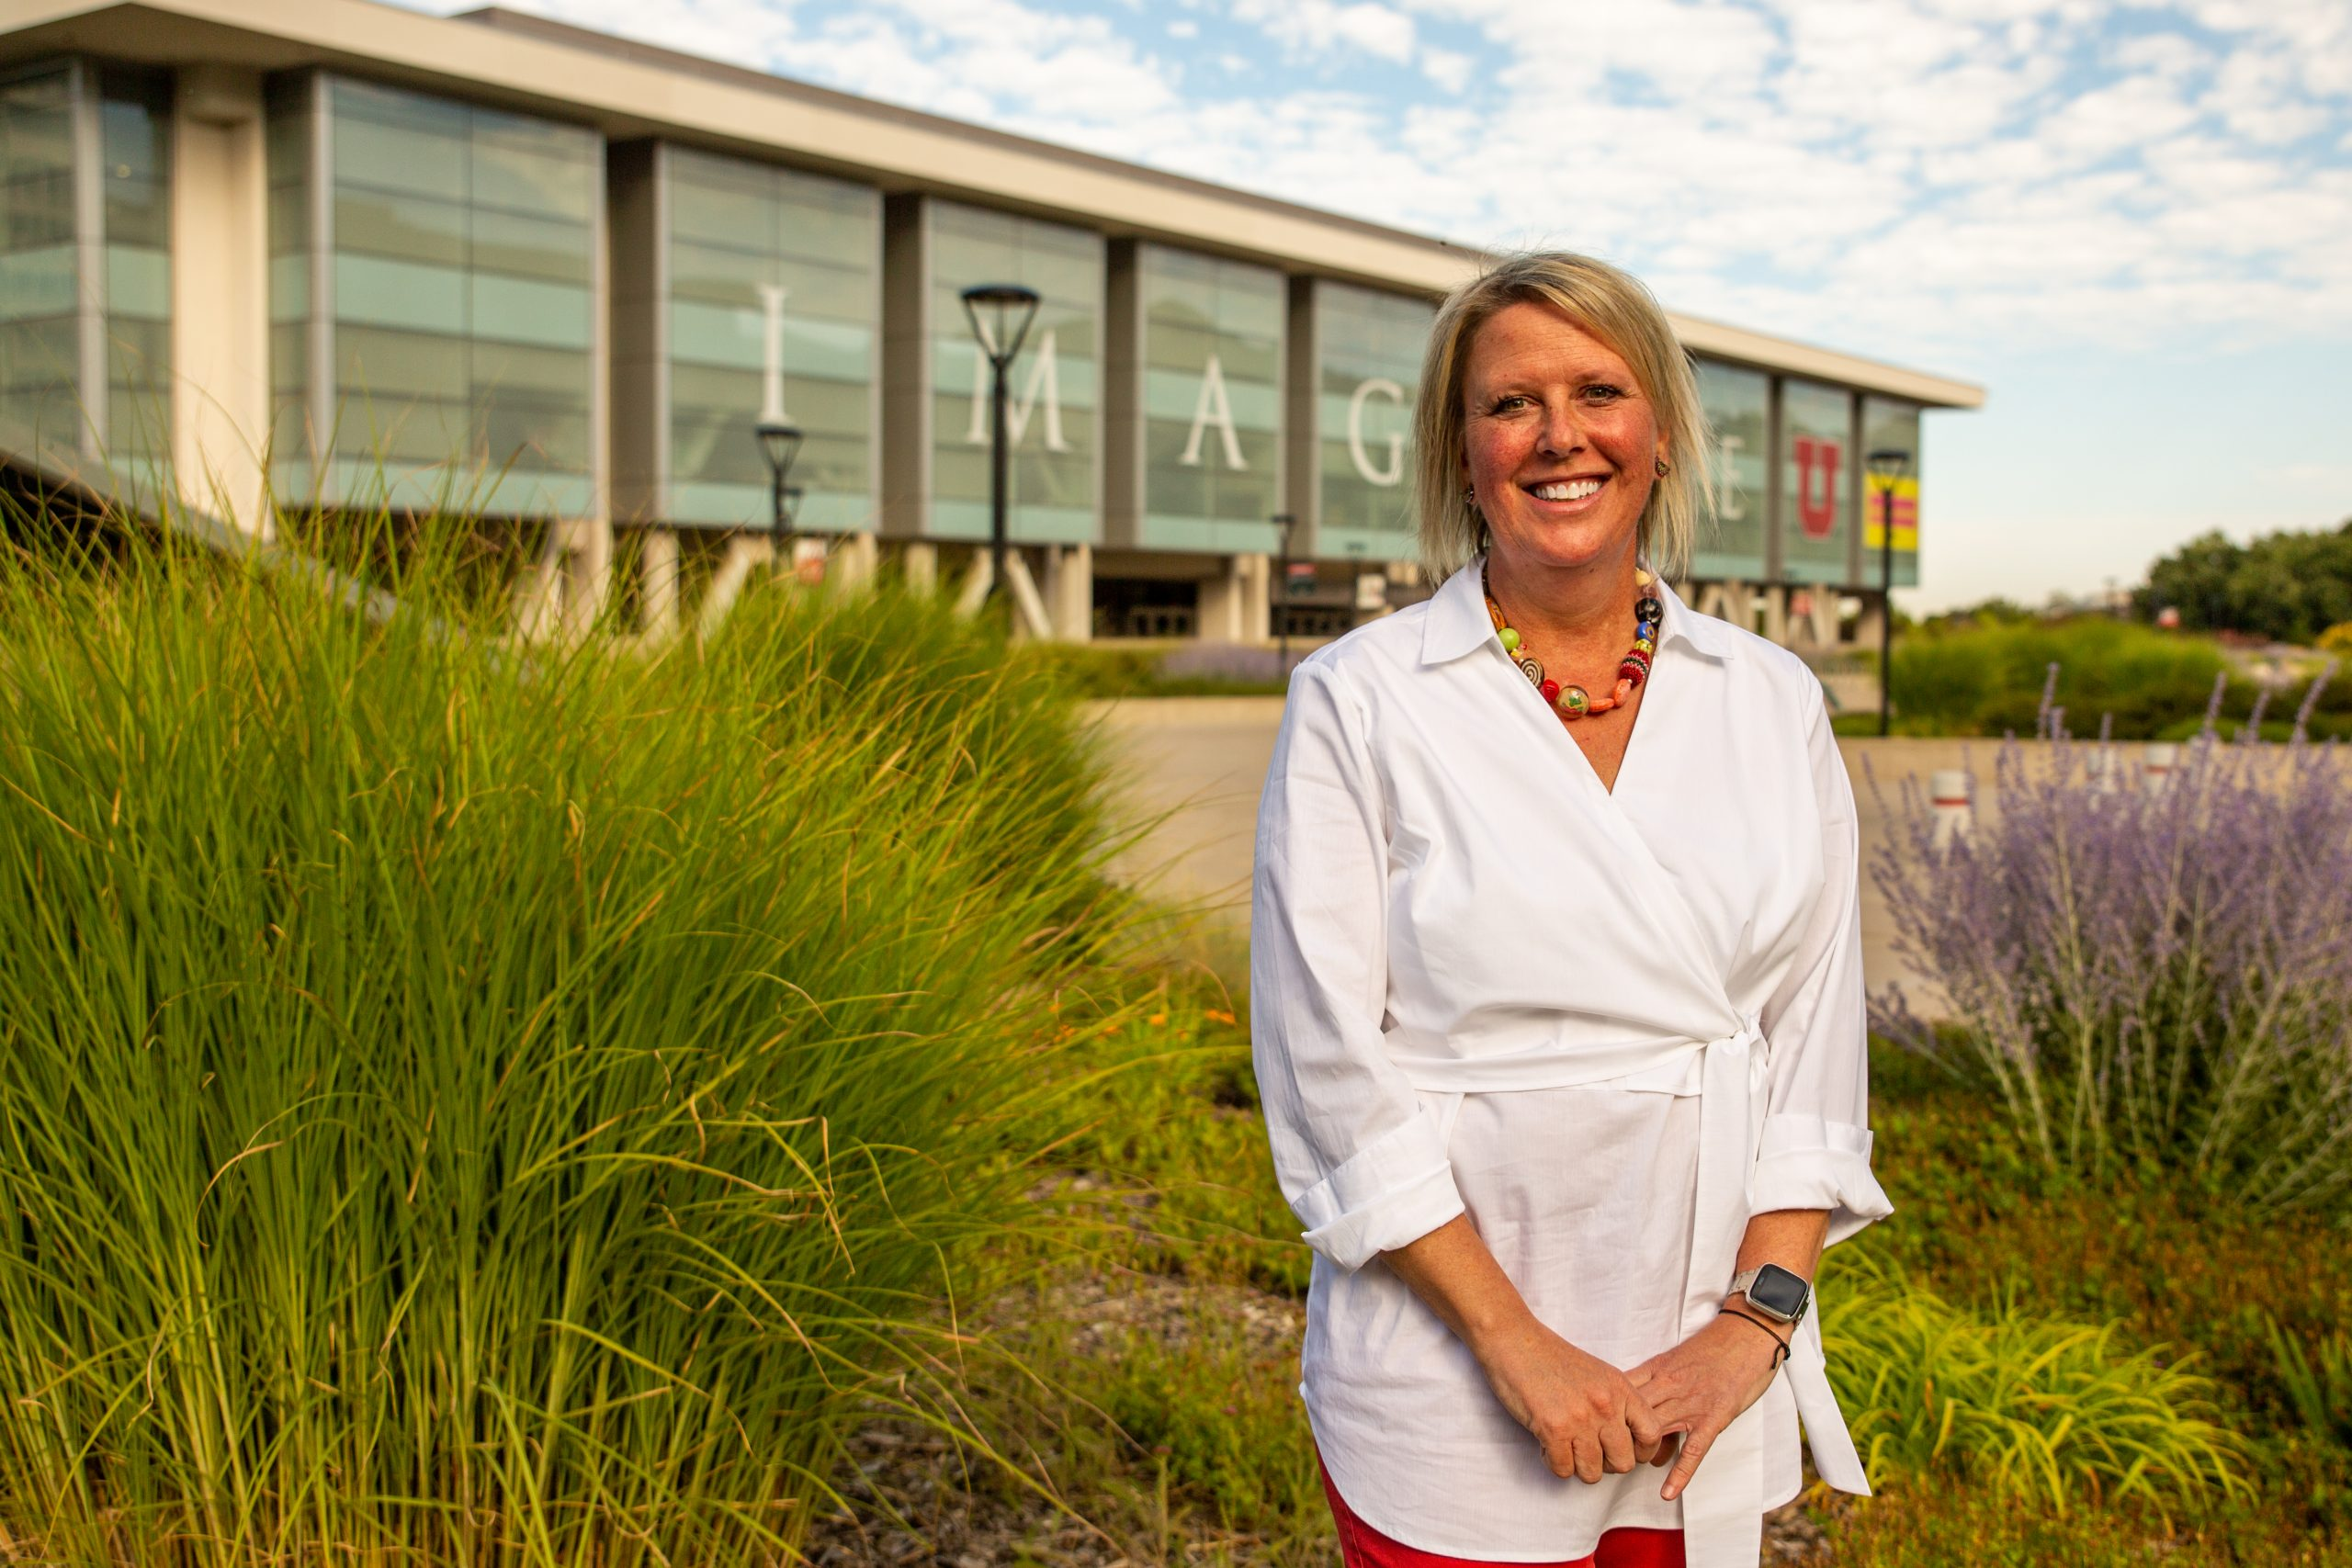 Karen Paisley, 2020 New Student Welcome faculty speaker smiles for photo outside Marriott Library at the University of Utah